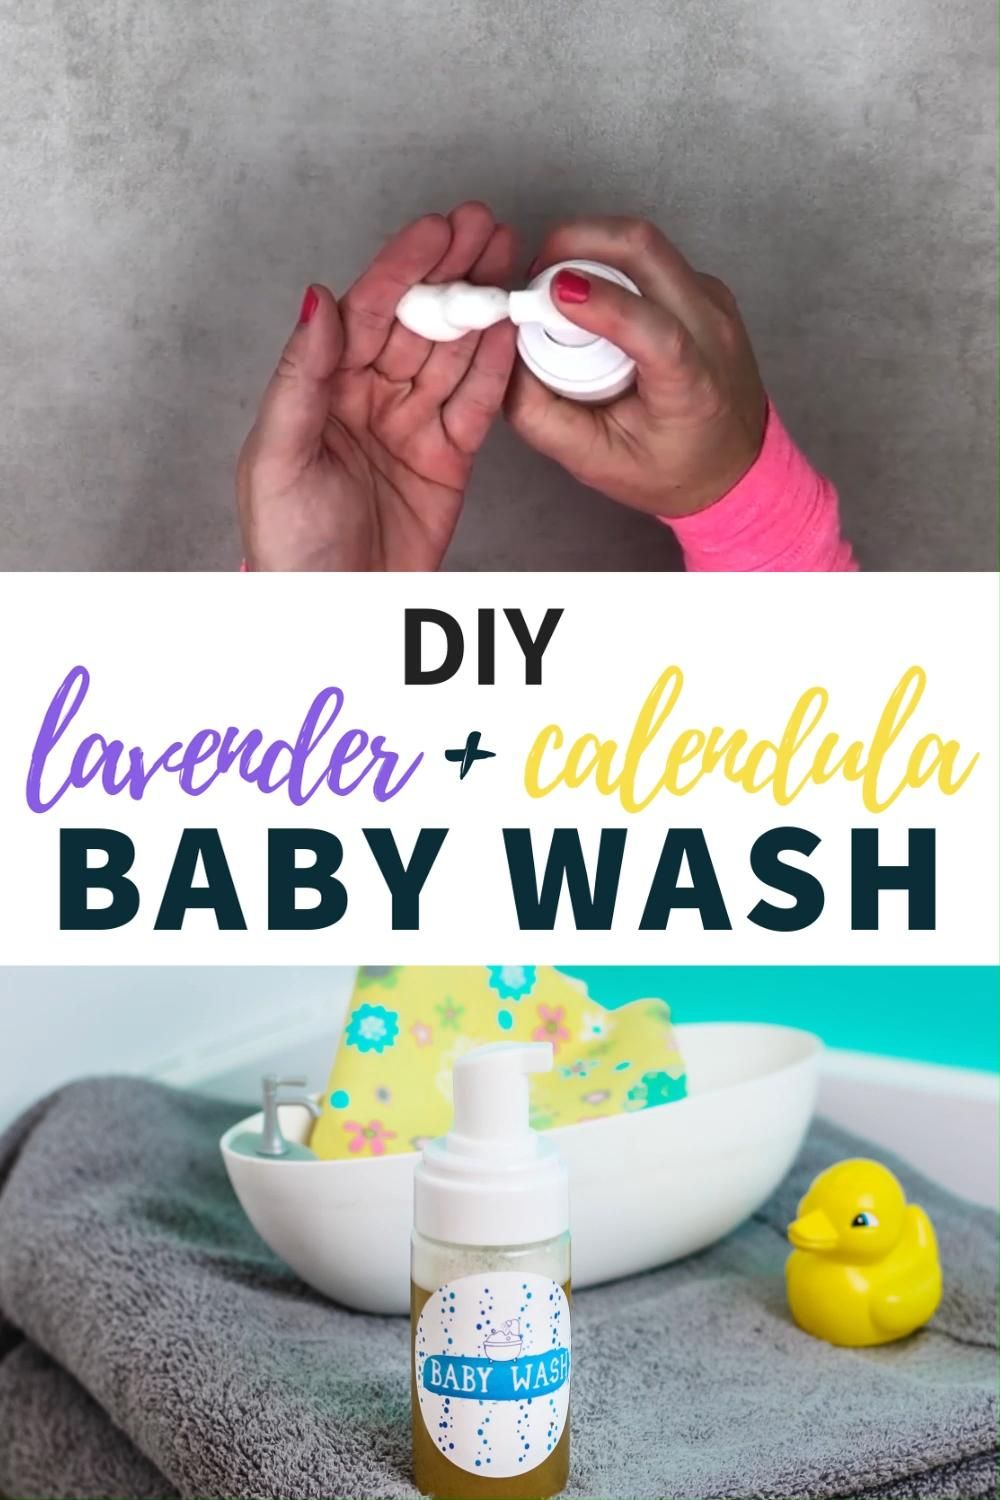 Calendula and Lavender DIY Baby Wash Recipe -   19 diy Baby products ideas